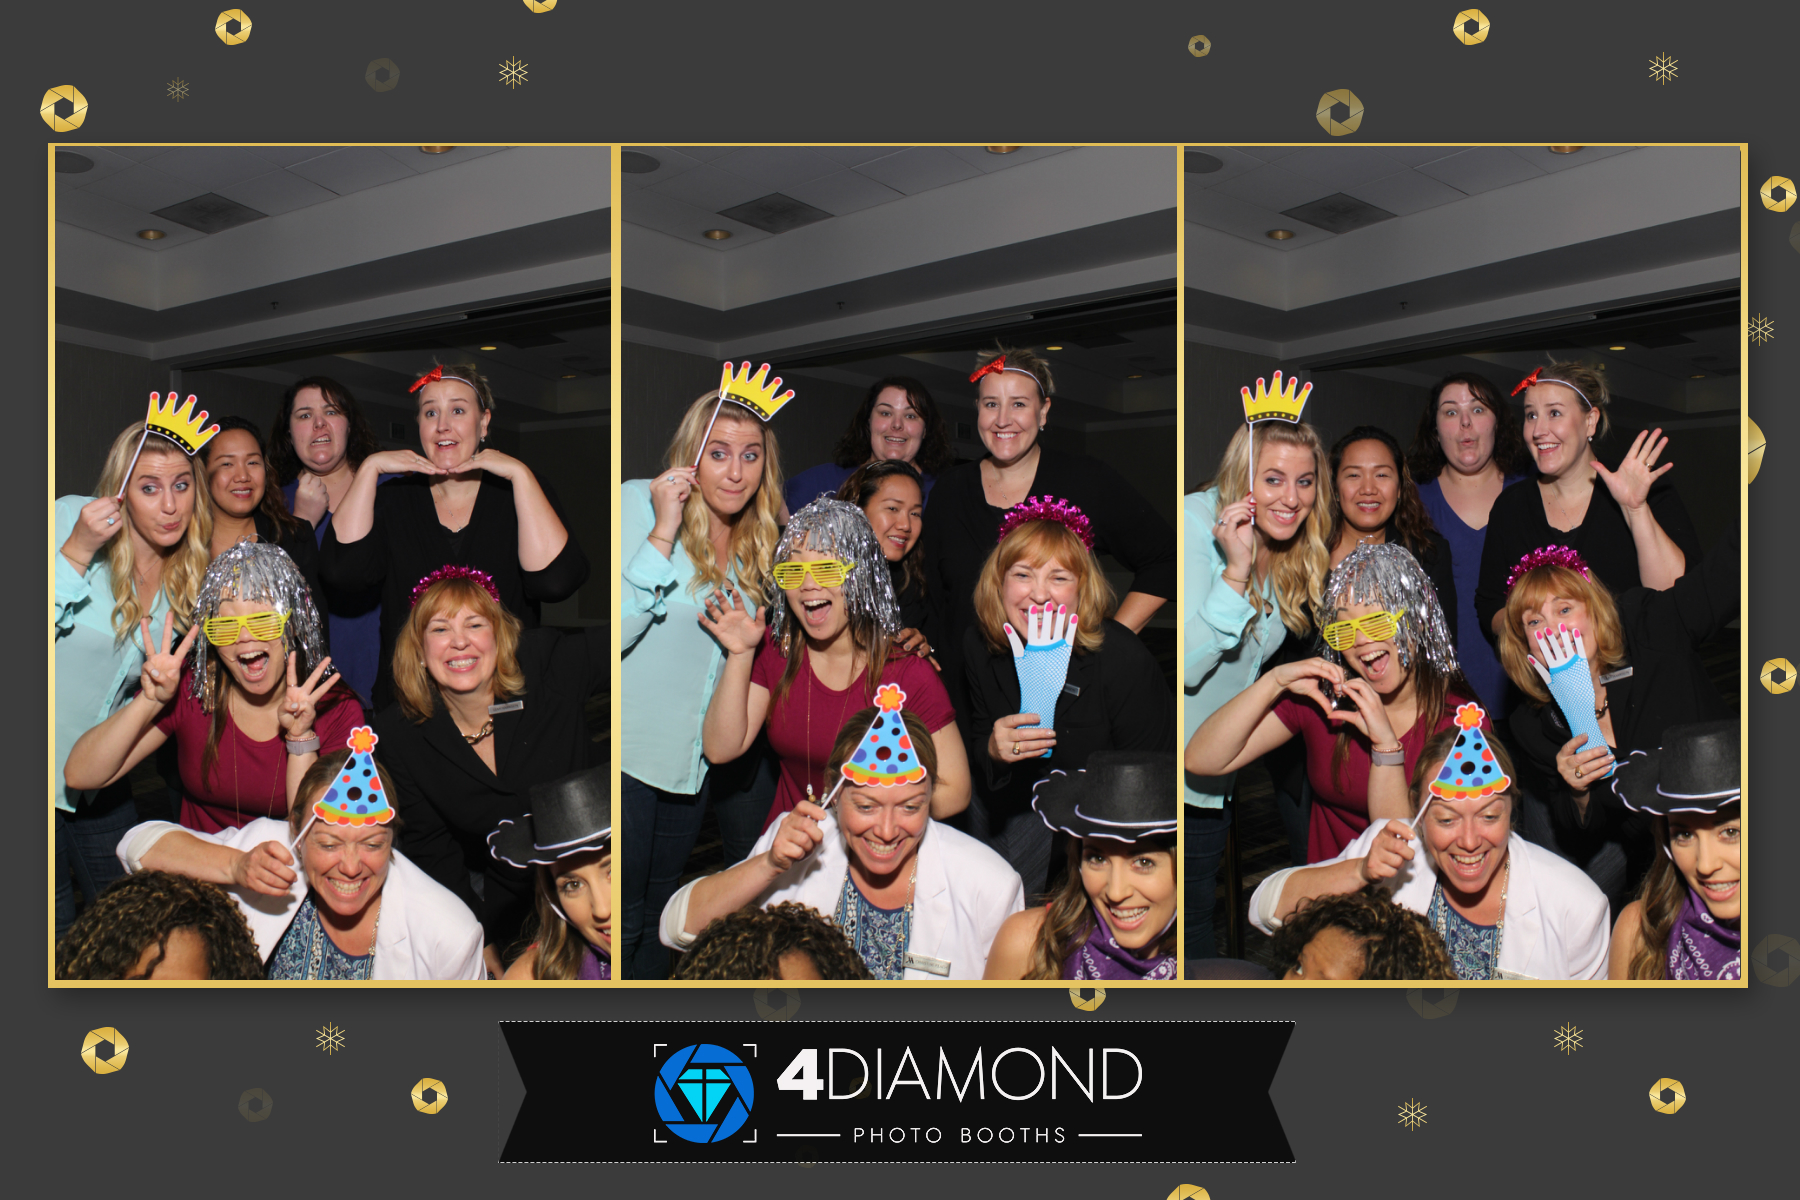 4 Diamond Events & Photo Booths image 4